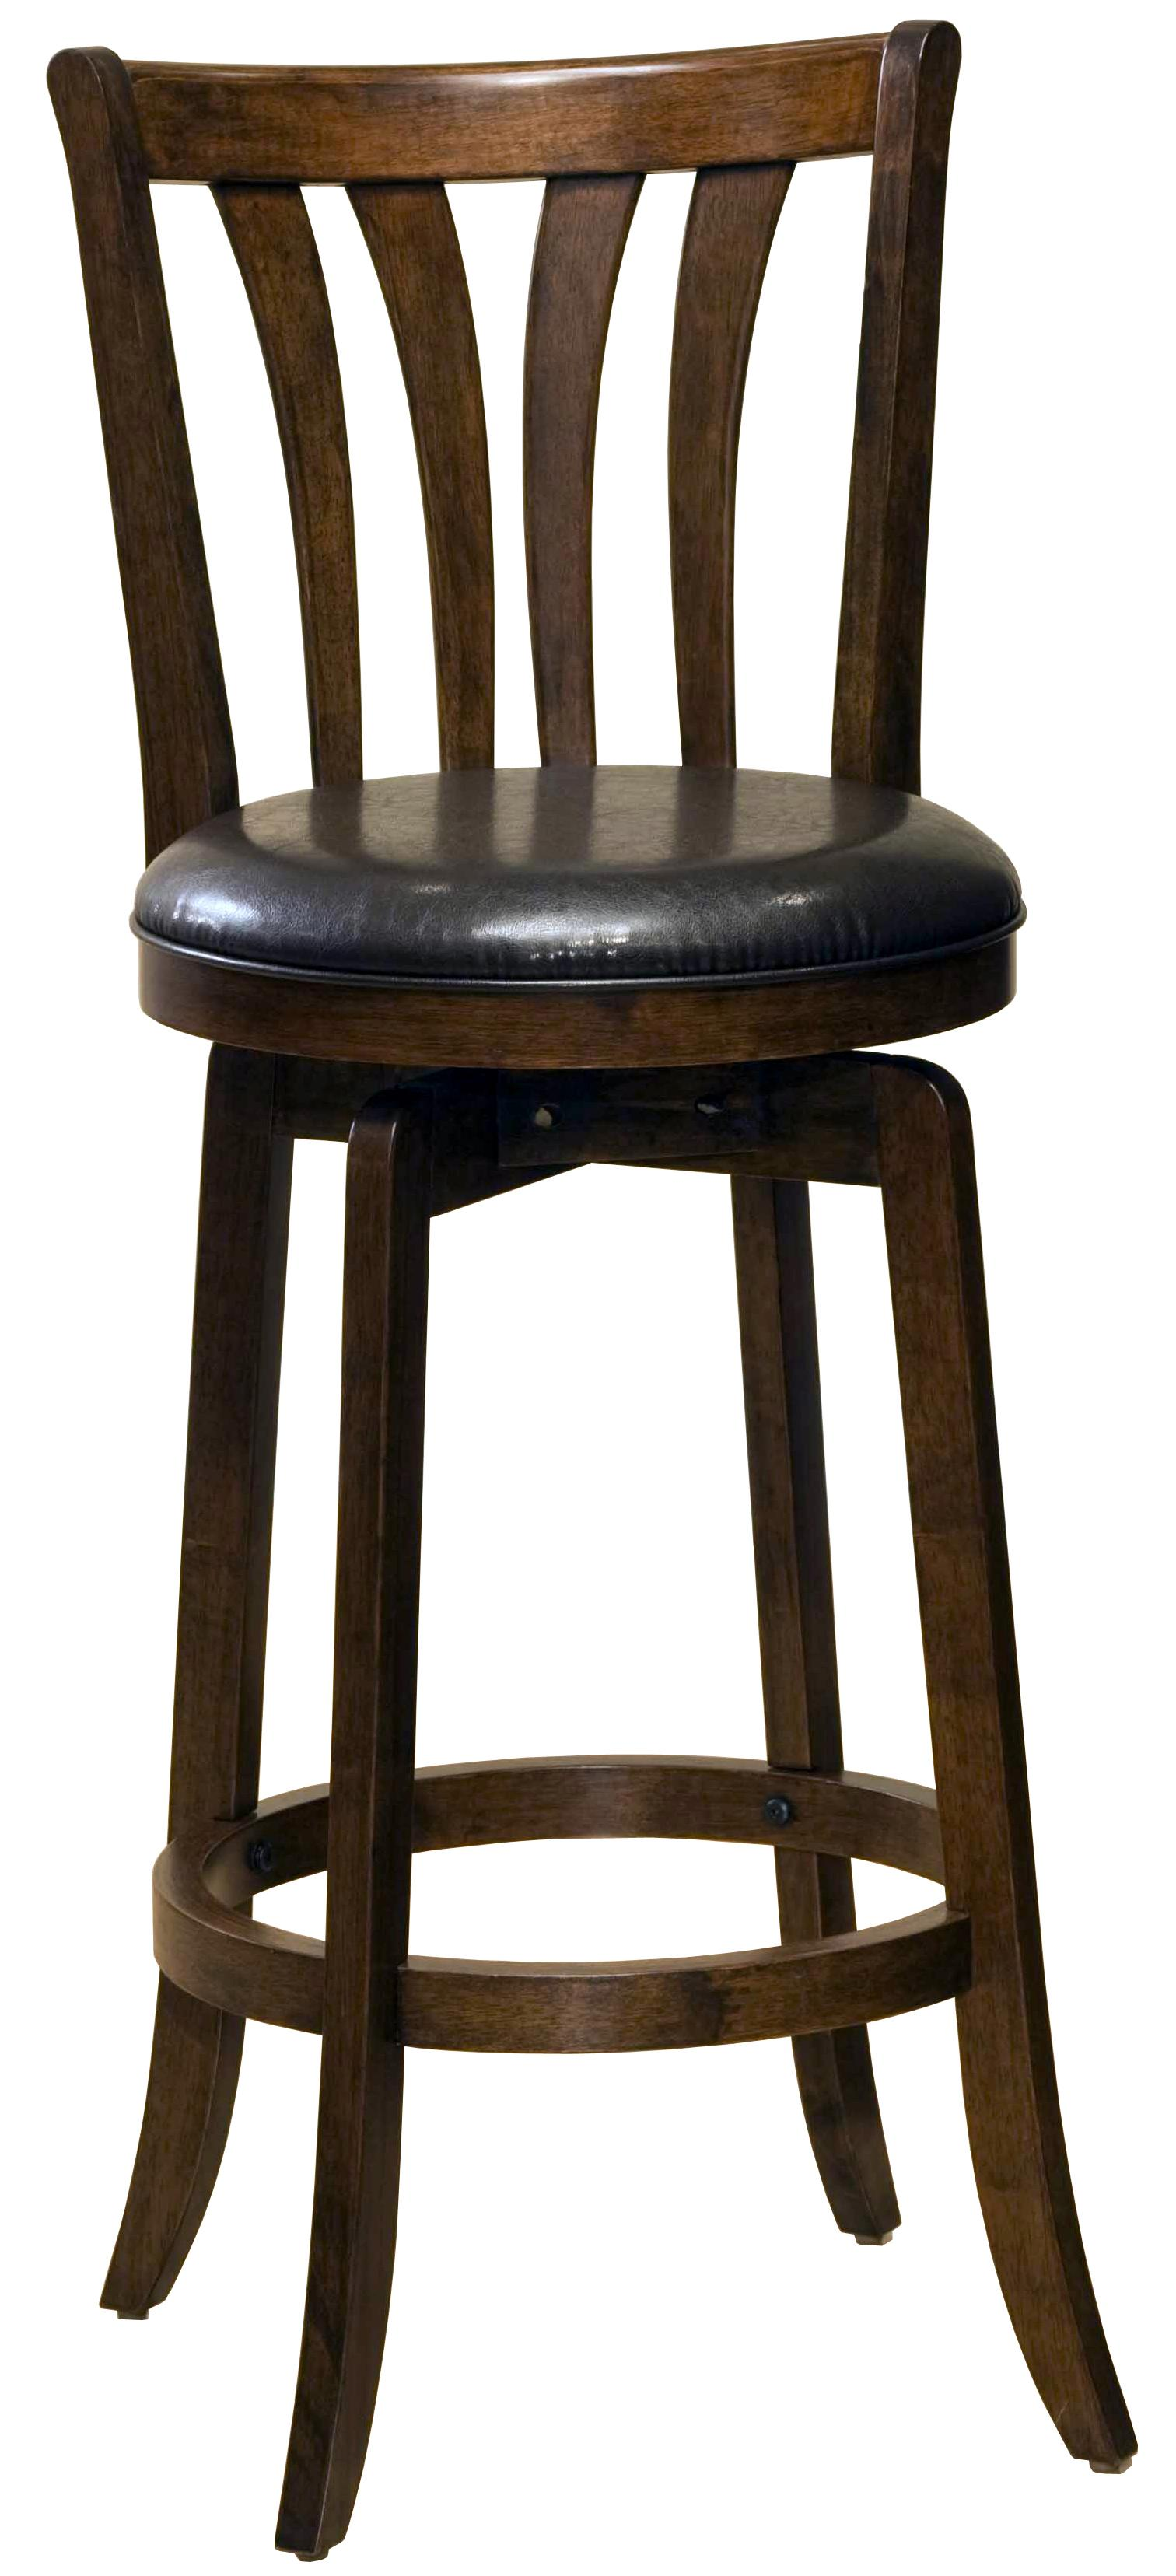 "26"" Counter Height Savana Swivel Bar Stool by Hillsdale"